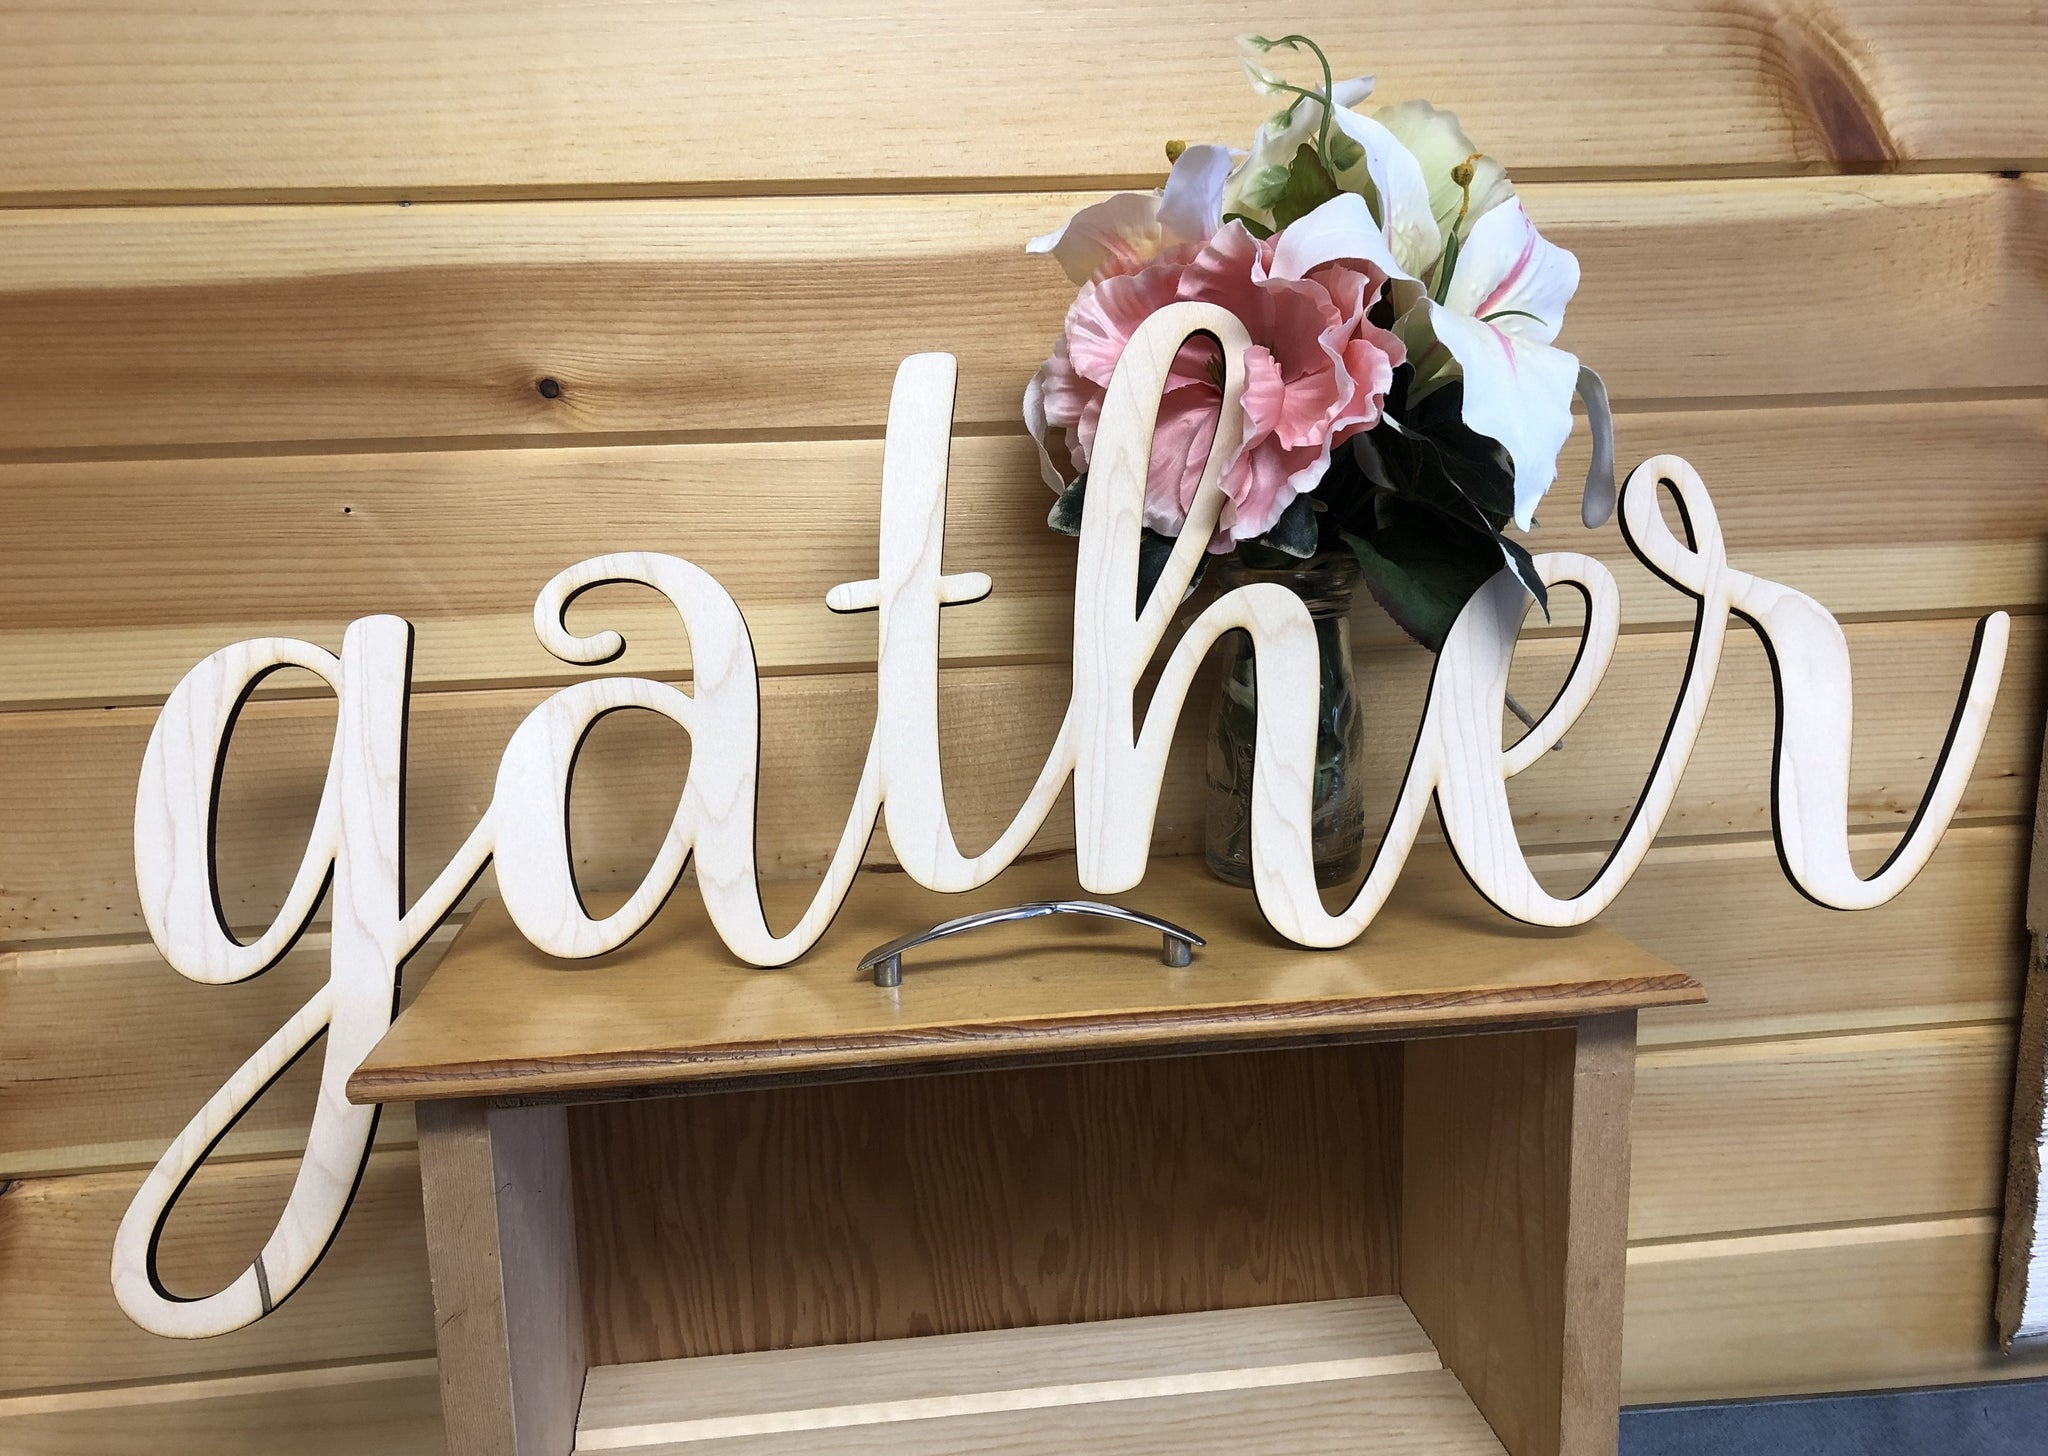 Gather Words. Gather Wall Decor. Wooden Gather Cut Out. Gather Sign. - C & A Engraving and Gifts